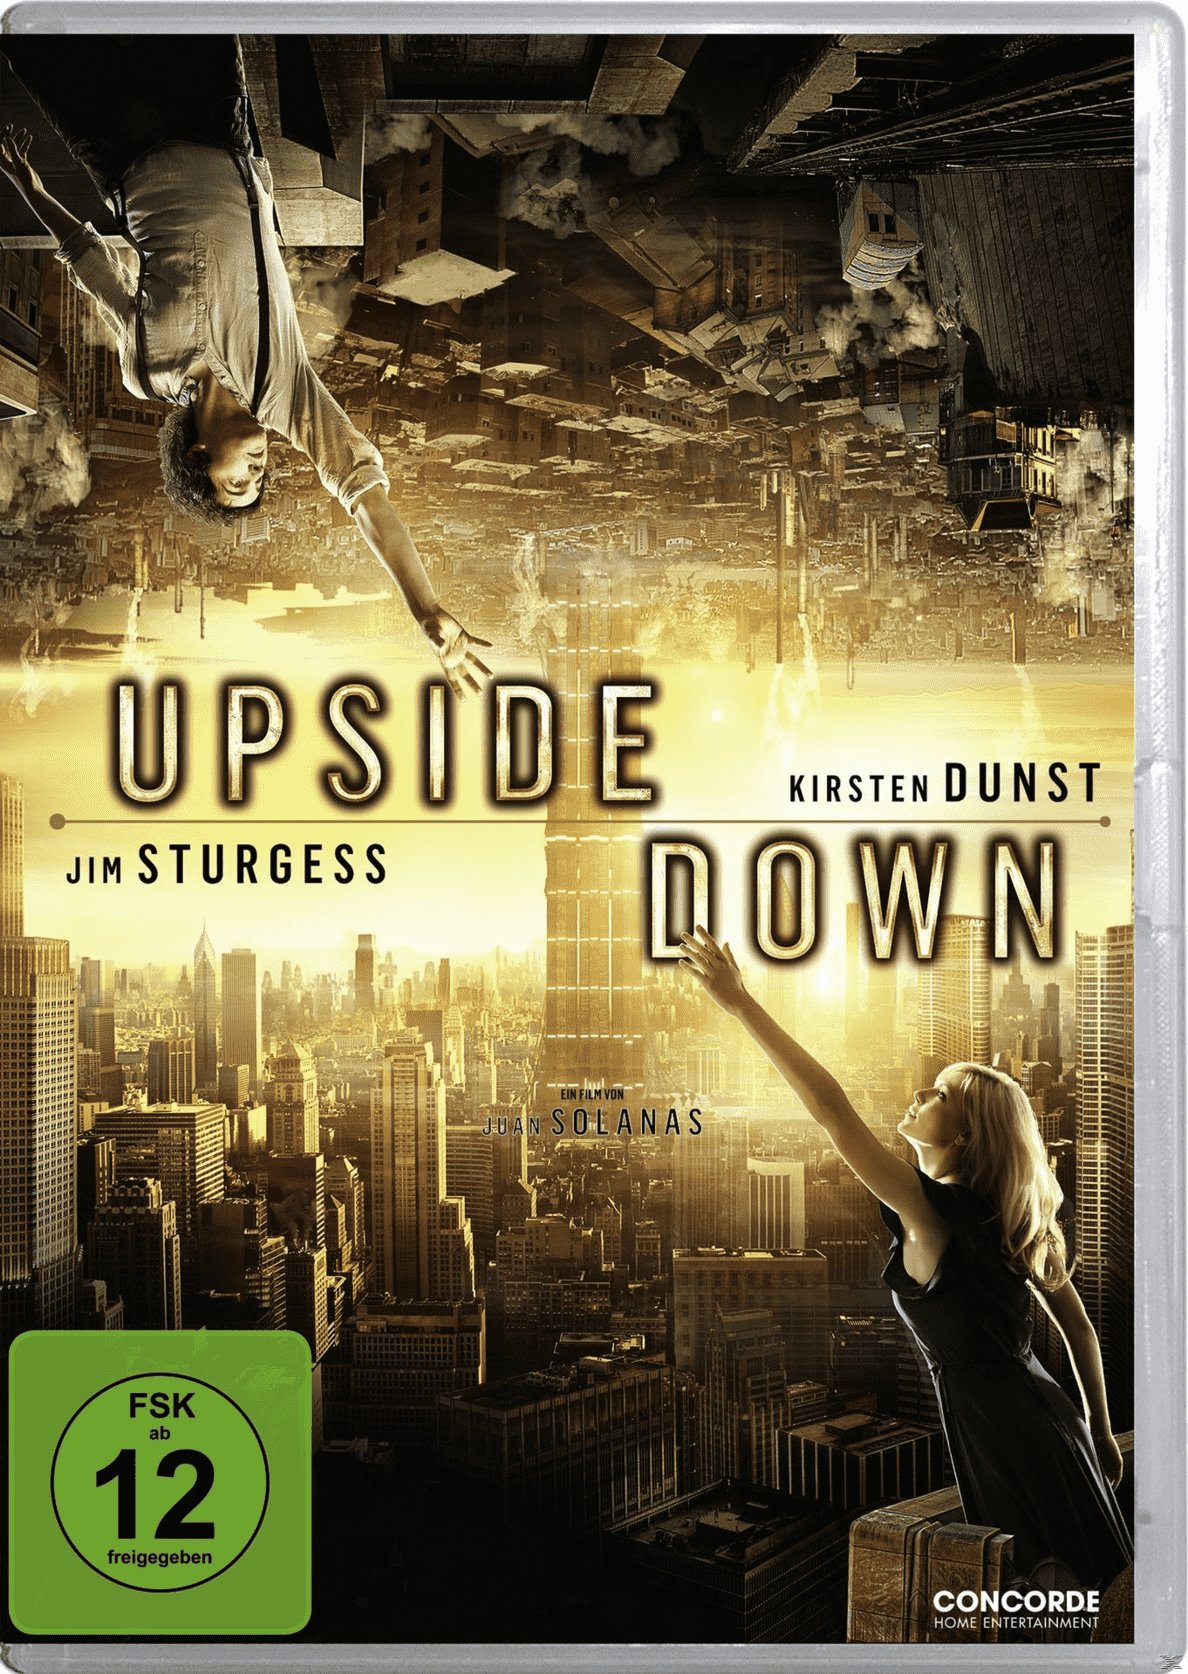 Upside Down auf DVD